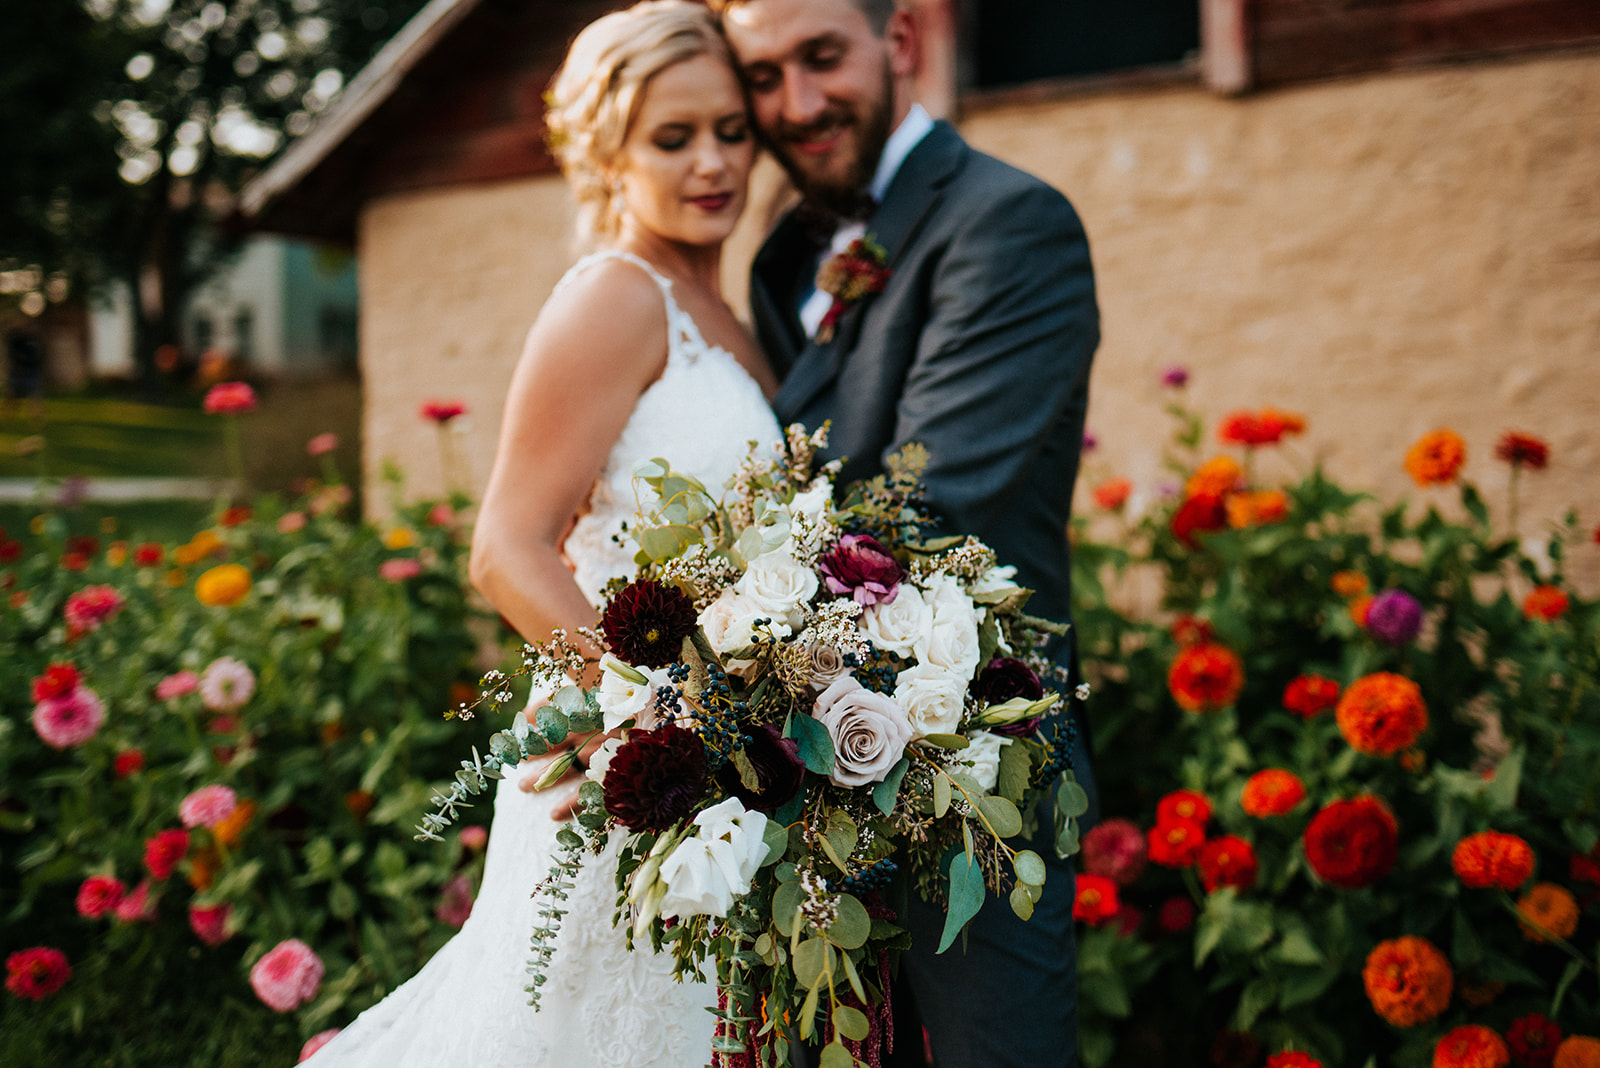 overthevineswisconsinwedding_0999.jpg